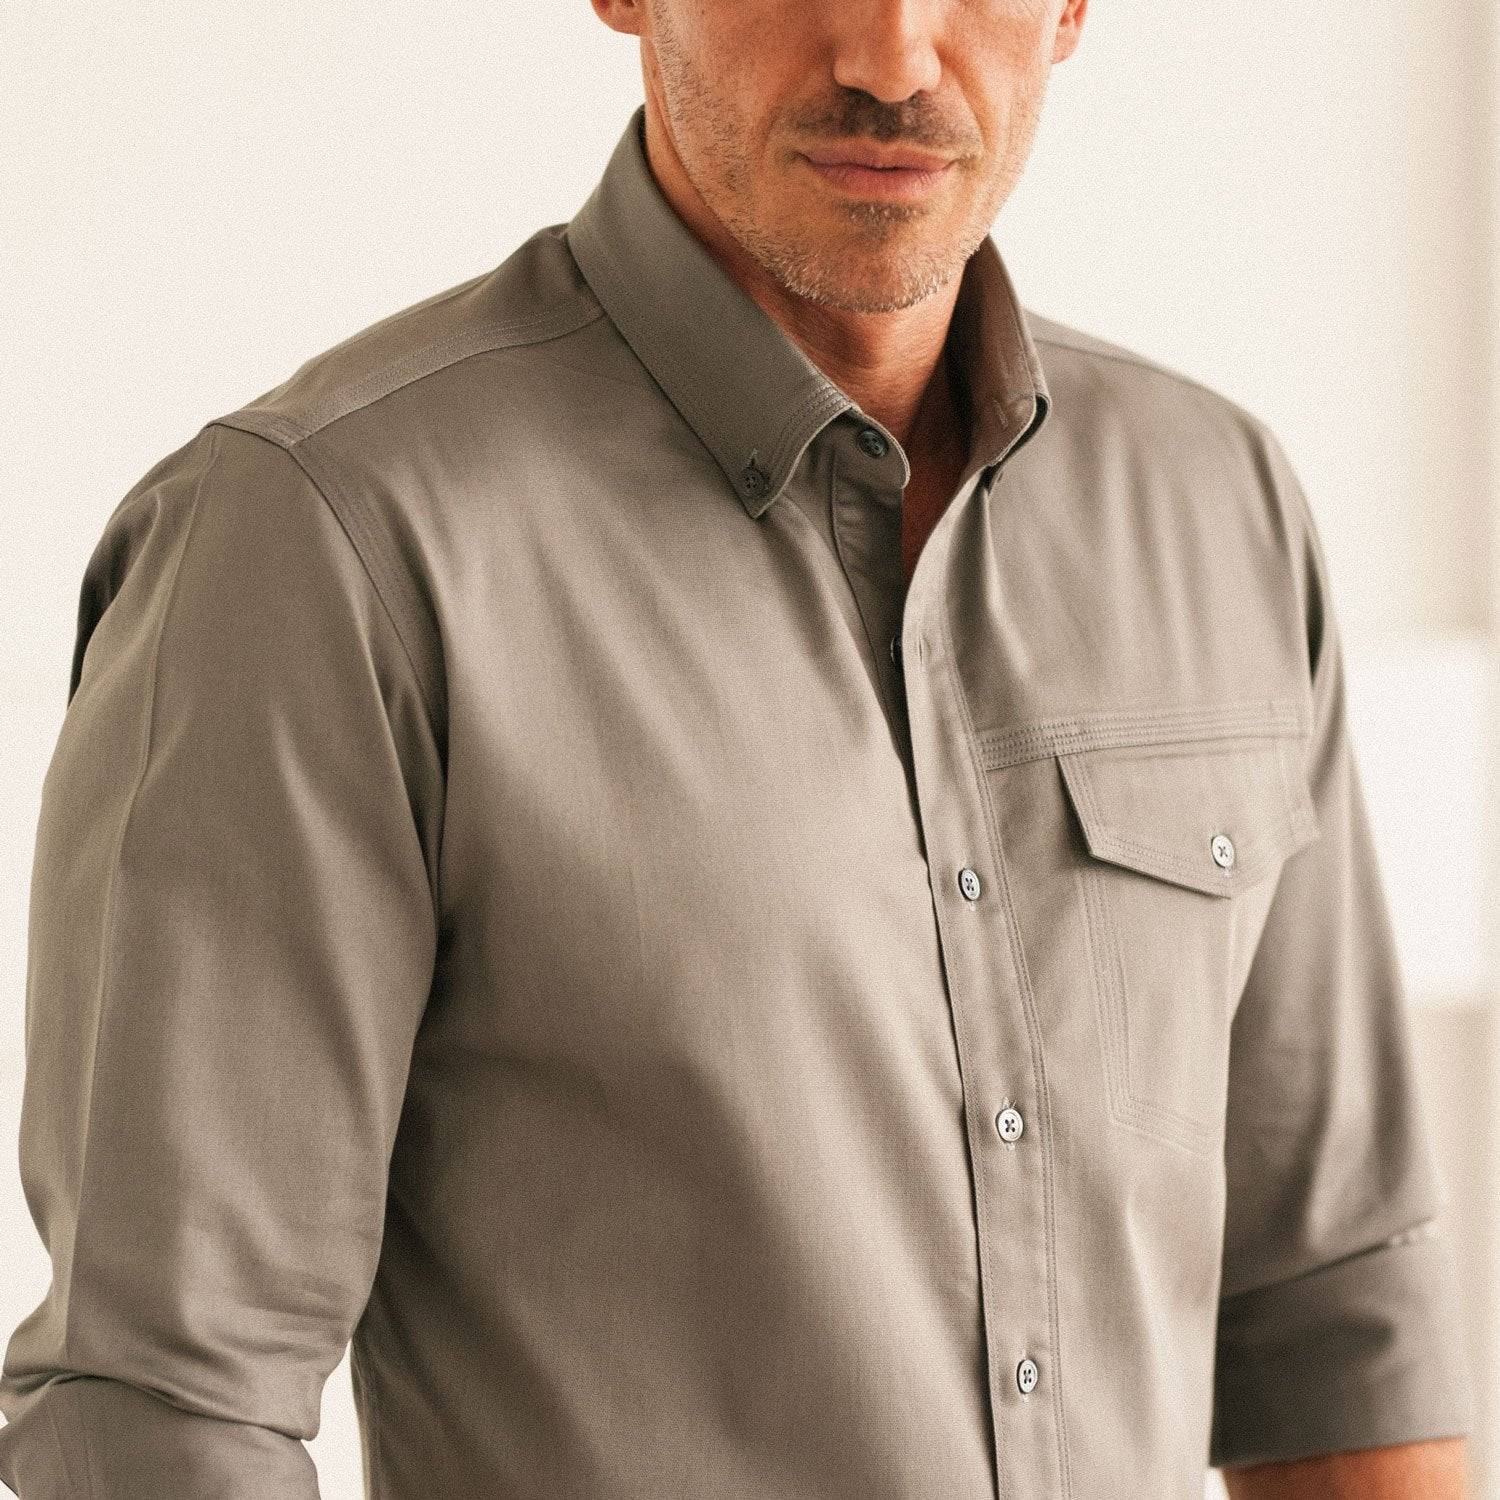 Men's Casual Shirt Shoulder Seam Placement